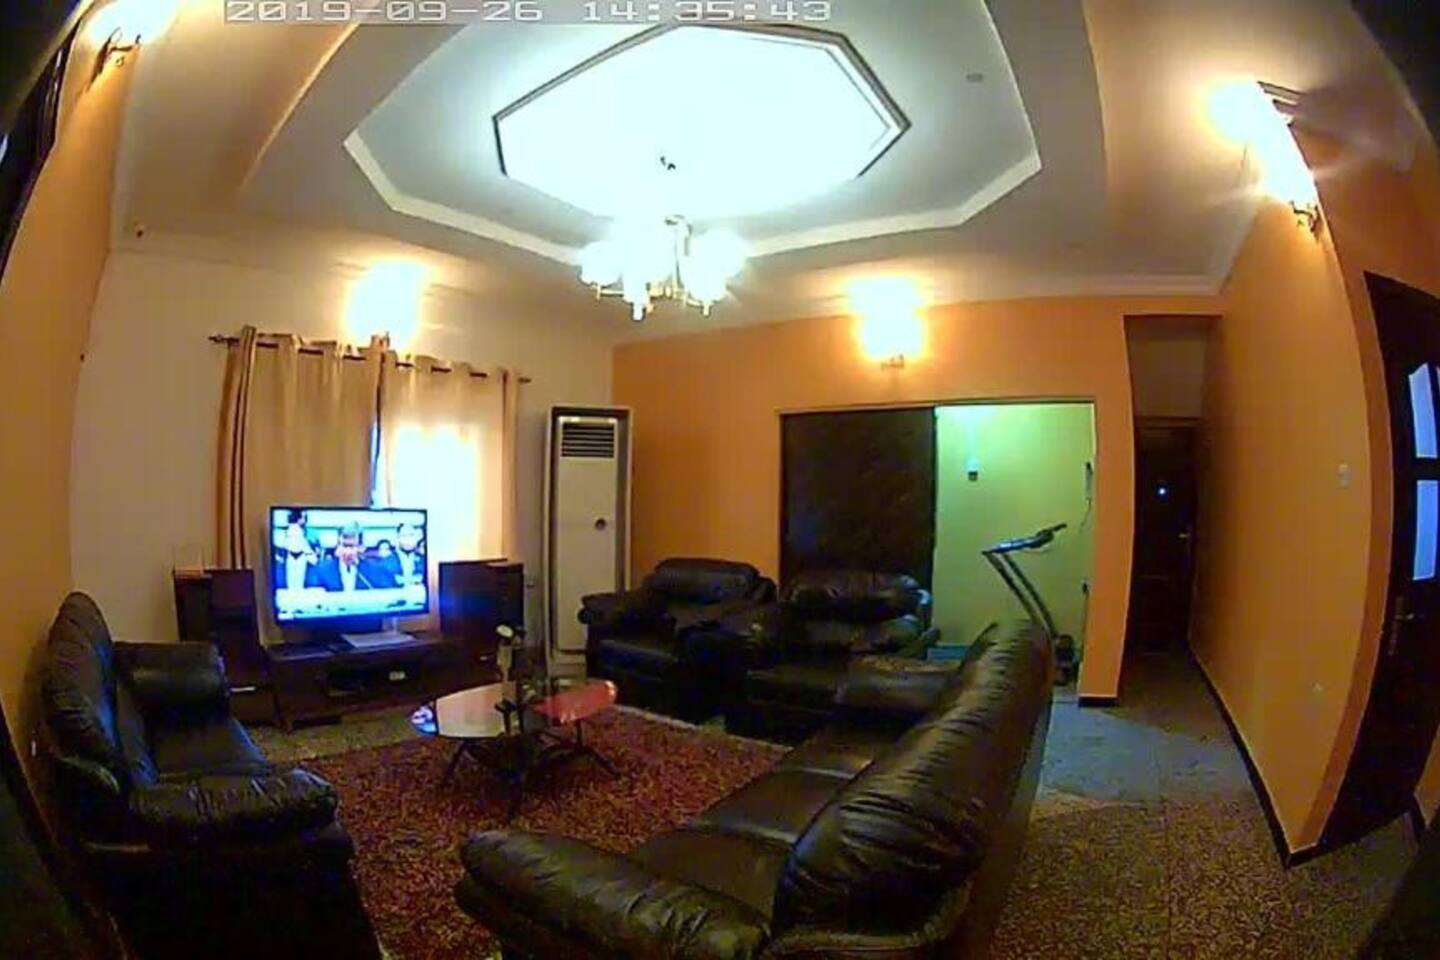 Bed Room- Cable TV, AC, Fridge, Table/Chair, Well Furnished Sitting Room, Well Furnished Kitchen, Treadmill, 24/7 Power/Wi-Fi, Free coffee/tea, Well stocked private bar, 3parking lots, 24/7 secured/serene location off Toyin Street, Ikeja.